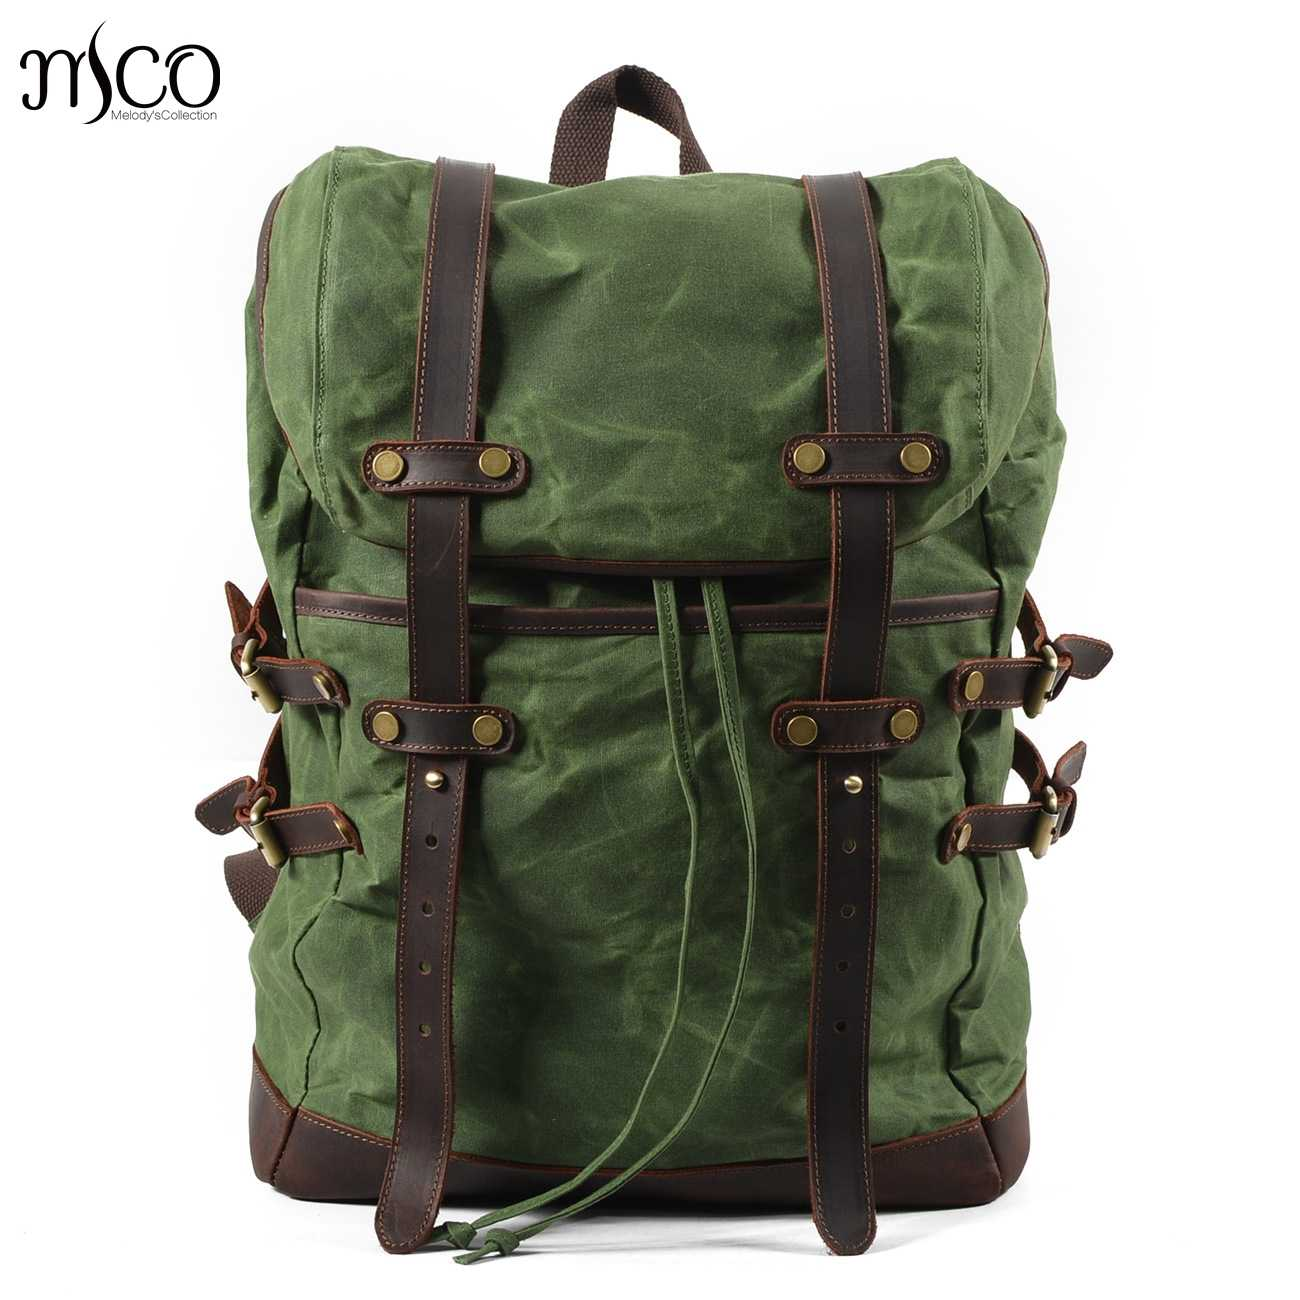 1e7dc43a79ed Men Backpacks Vintage Waxed Canvas Leather School Military Backpack Male  Large Capacity Waterproof Bagpack Travel Rucksack